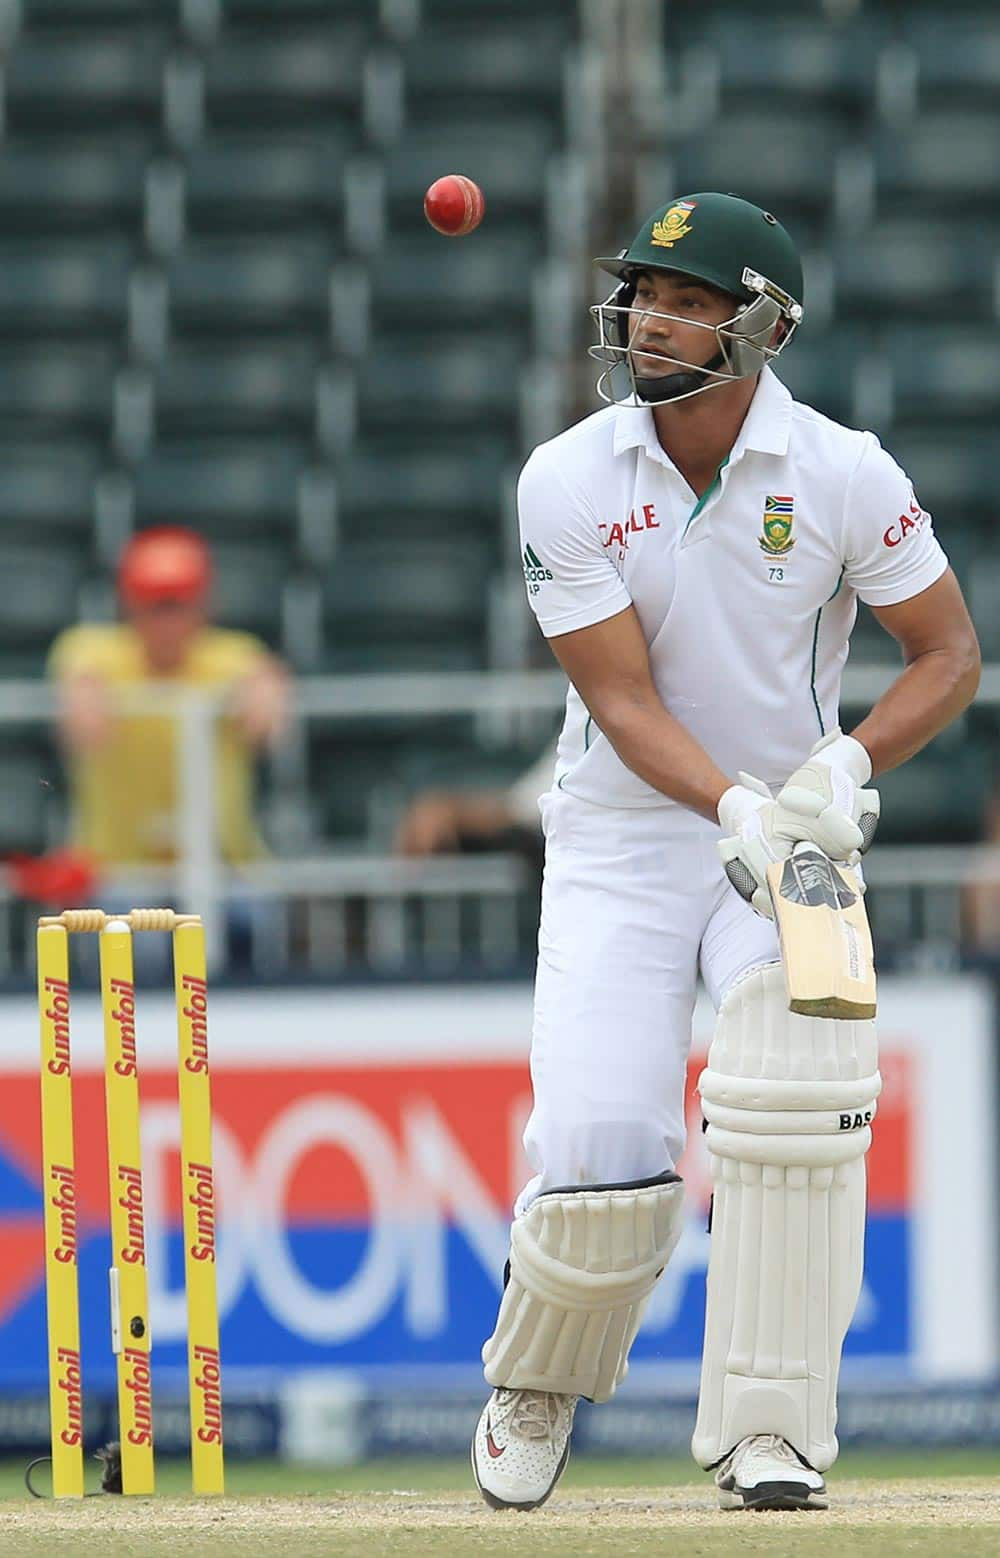 South Africa's batsman Alviro Petersen watches his shot bounce next to him, during their 2nd innings on the fourth day of their cricket test match against India at Wanderers stadium in Johannesburg.